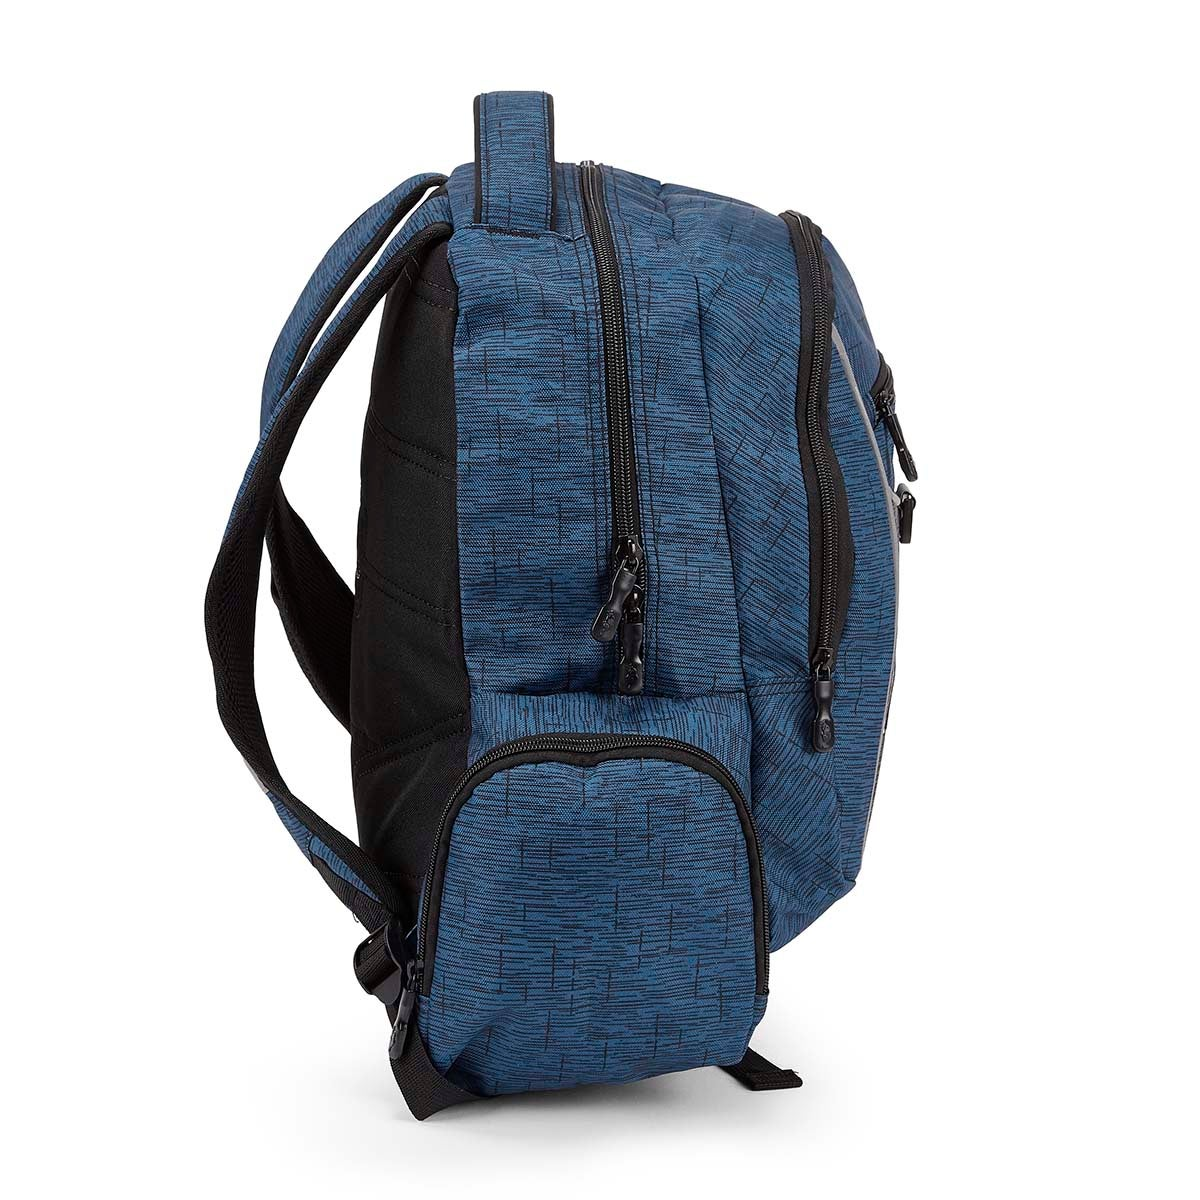 Roots73 navy/grey backpack